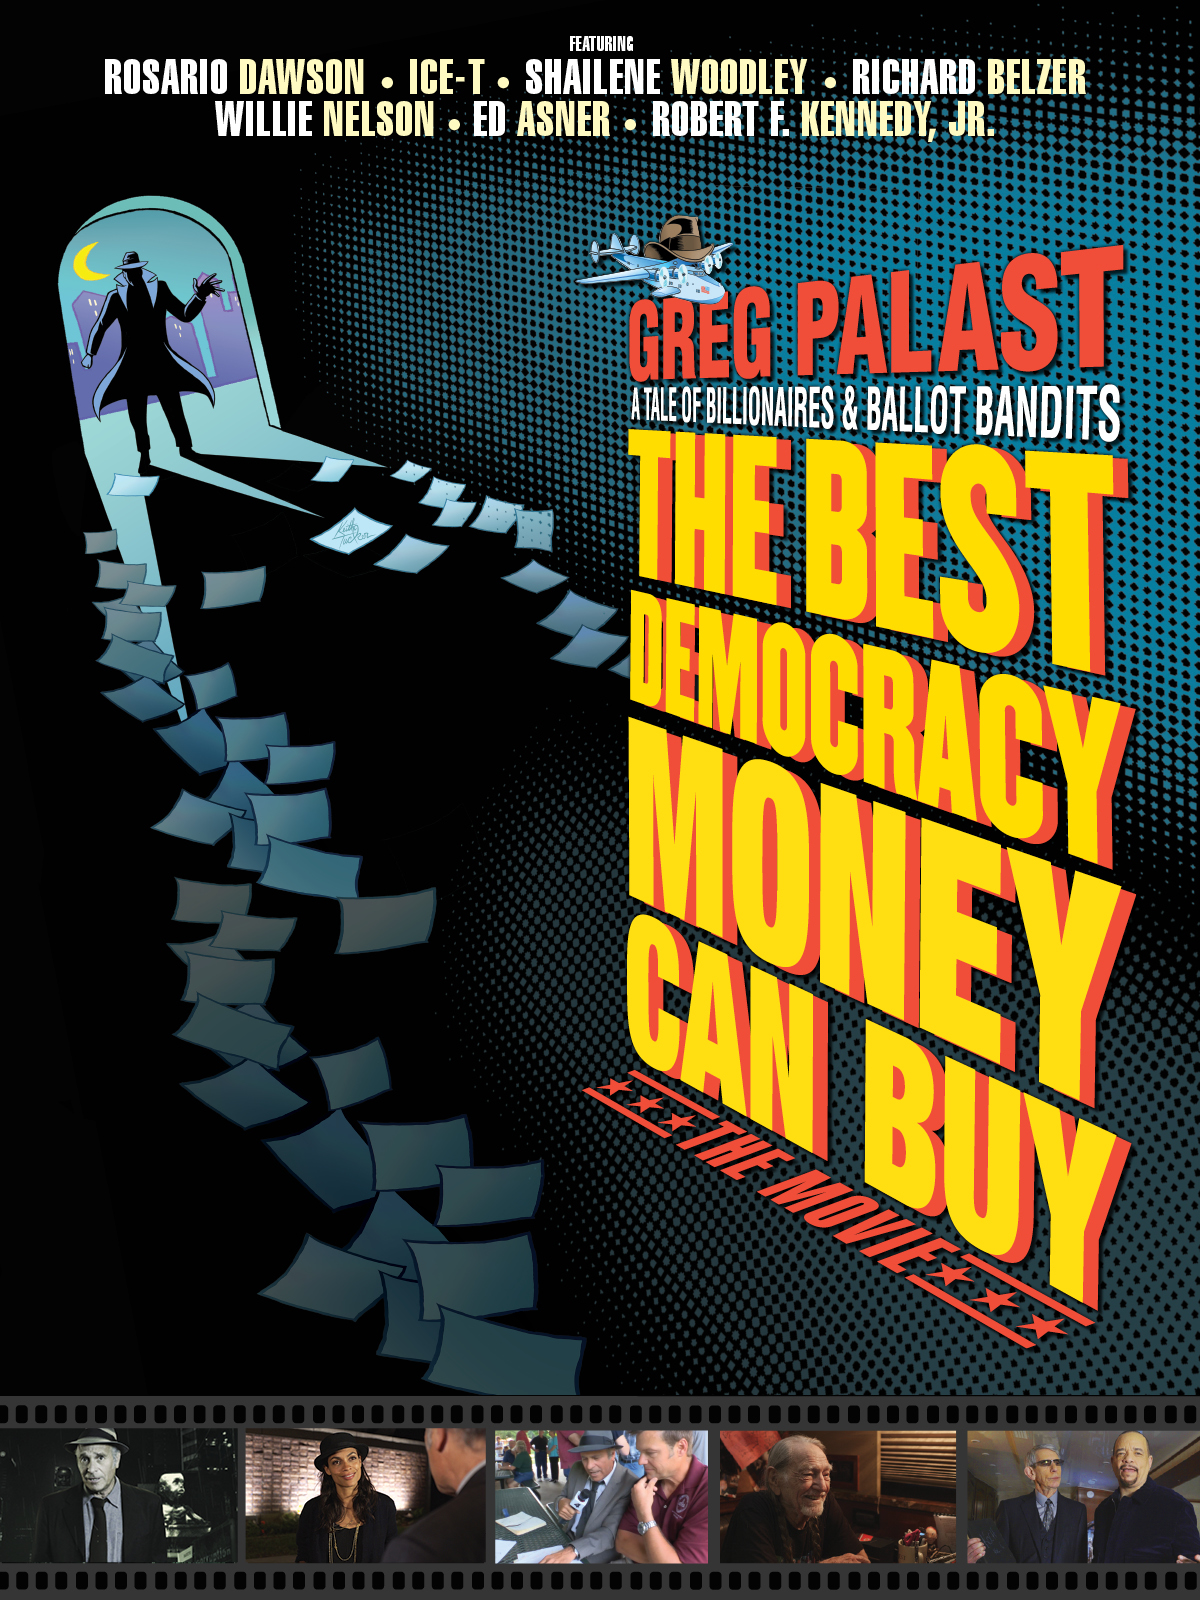 The Best Democracy Money Can Buy: A Tale of Billionaires & Ballot Bandits (DVD)